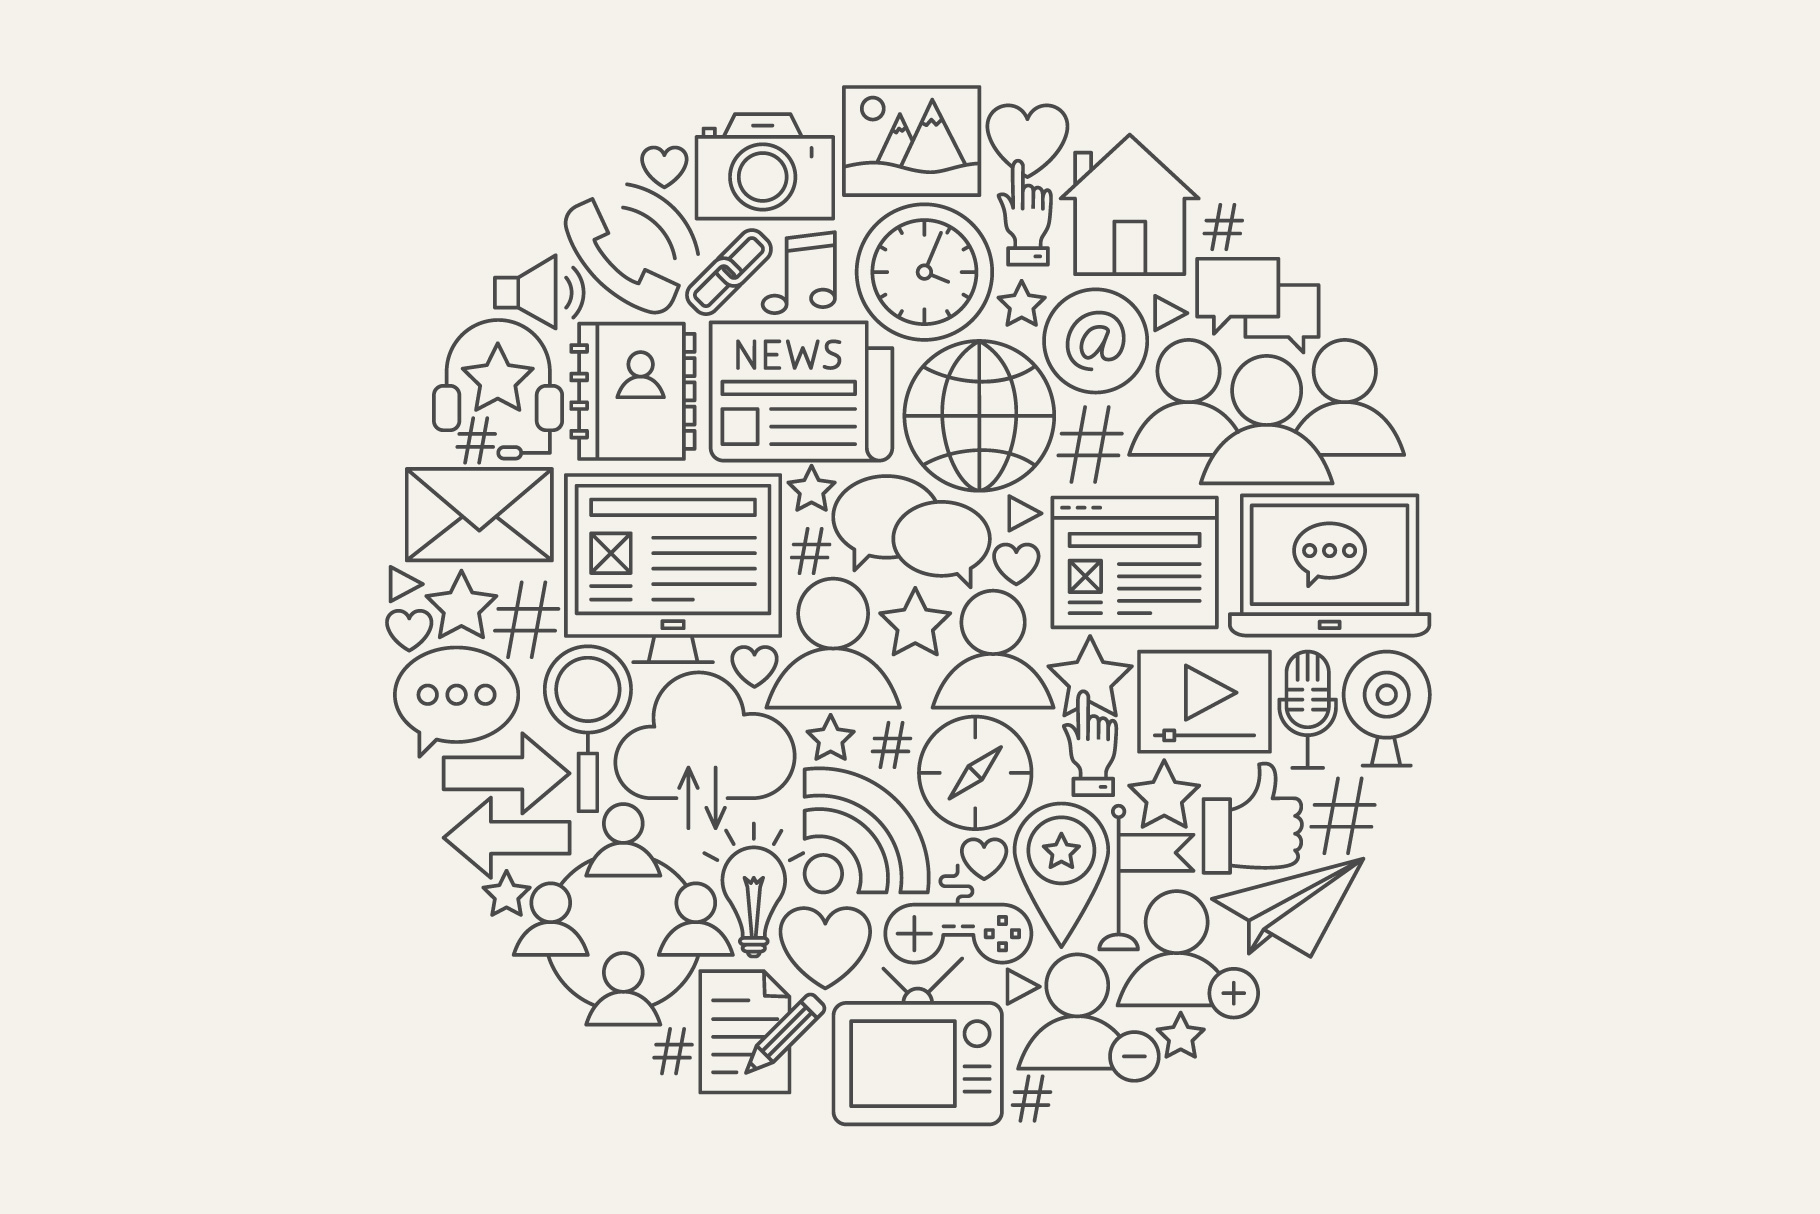 Social Media Line Art Icons example image 4